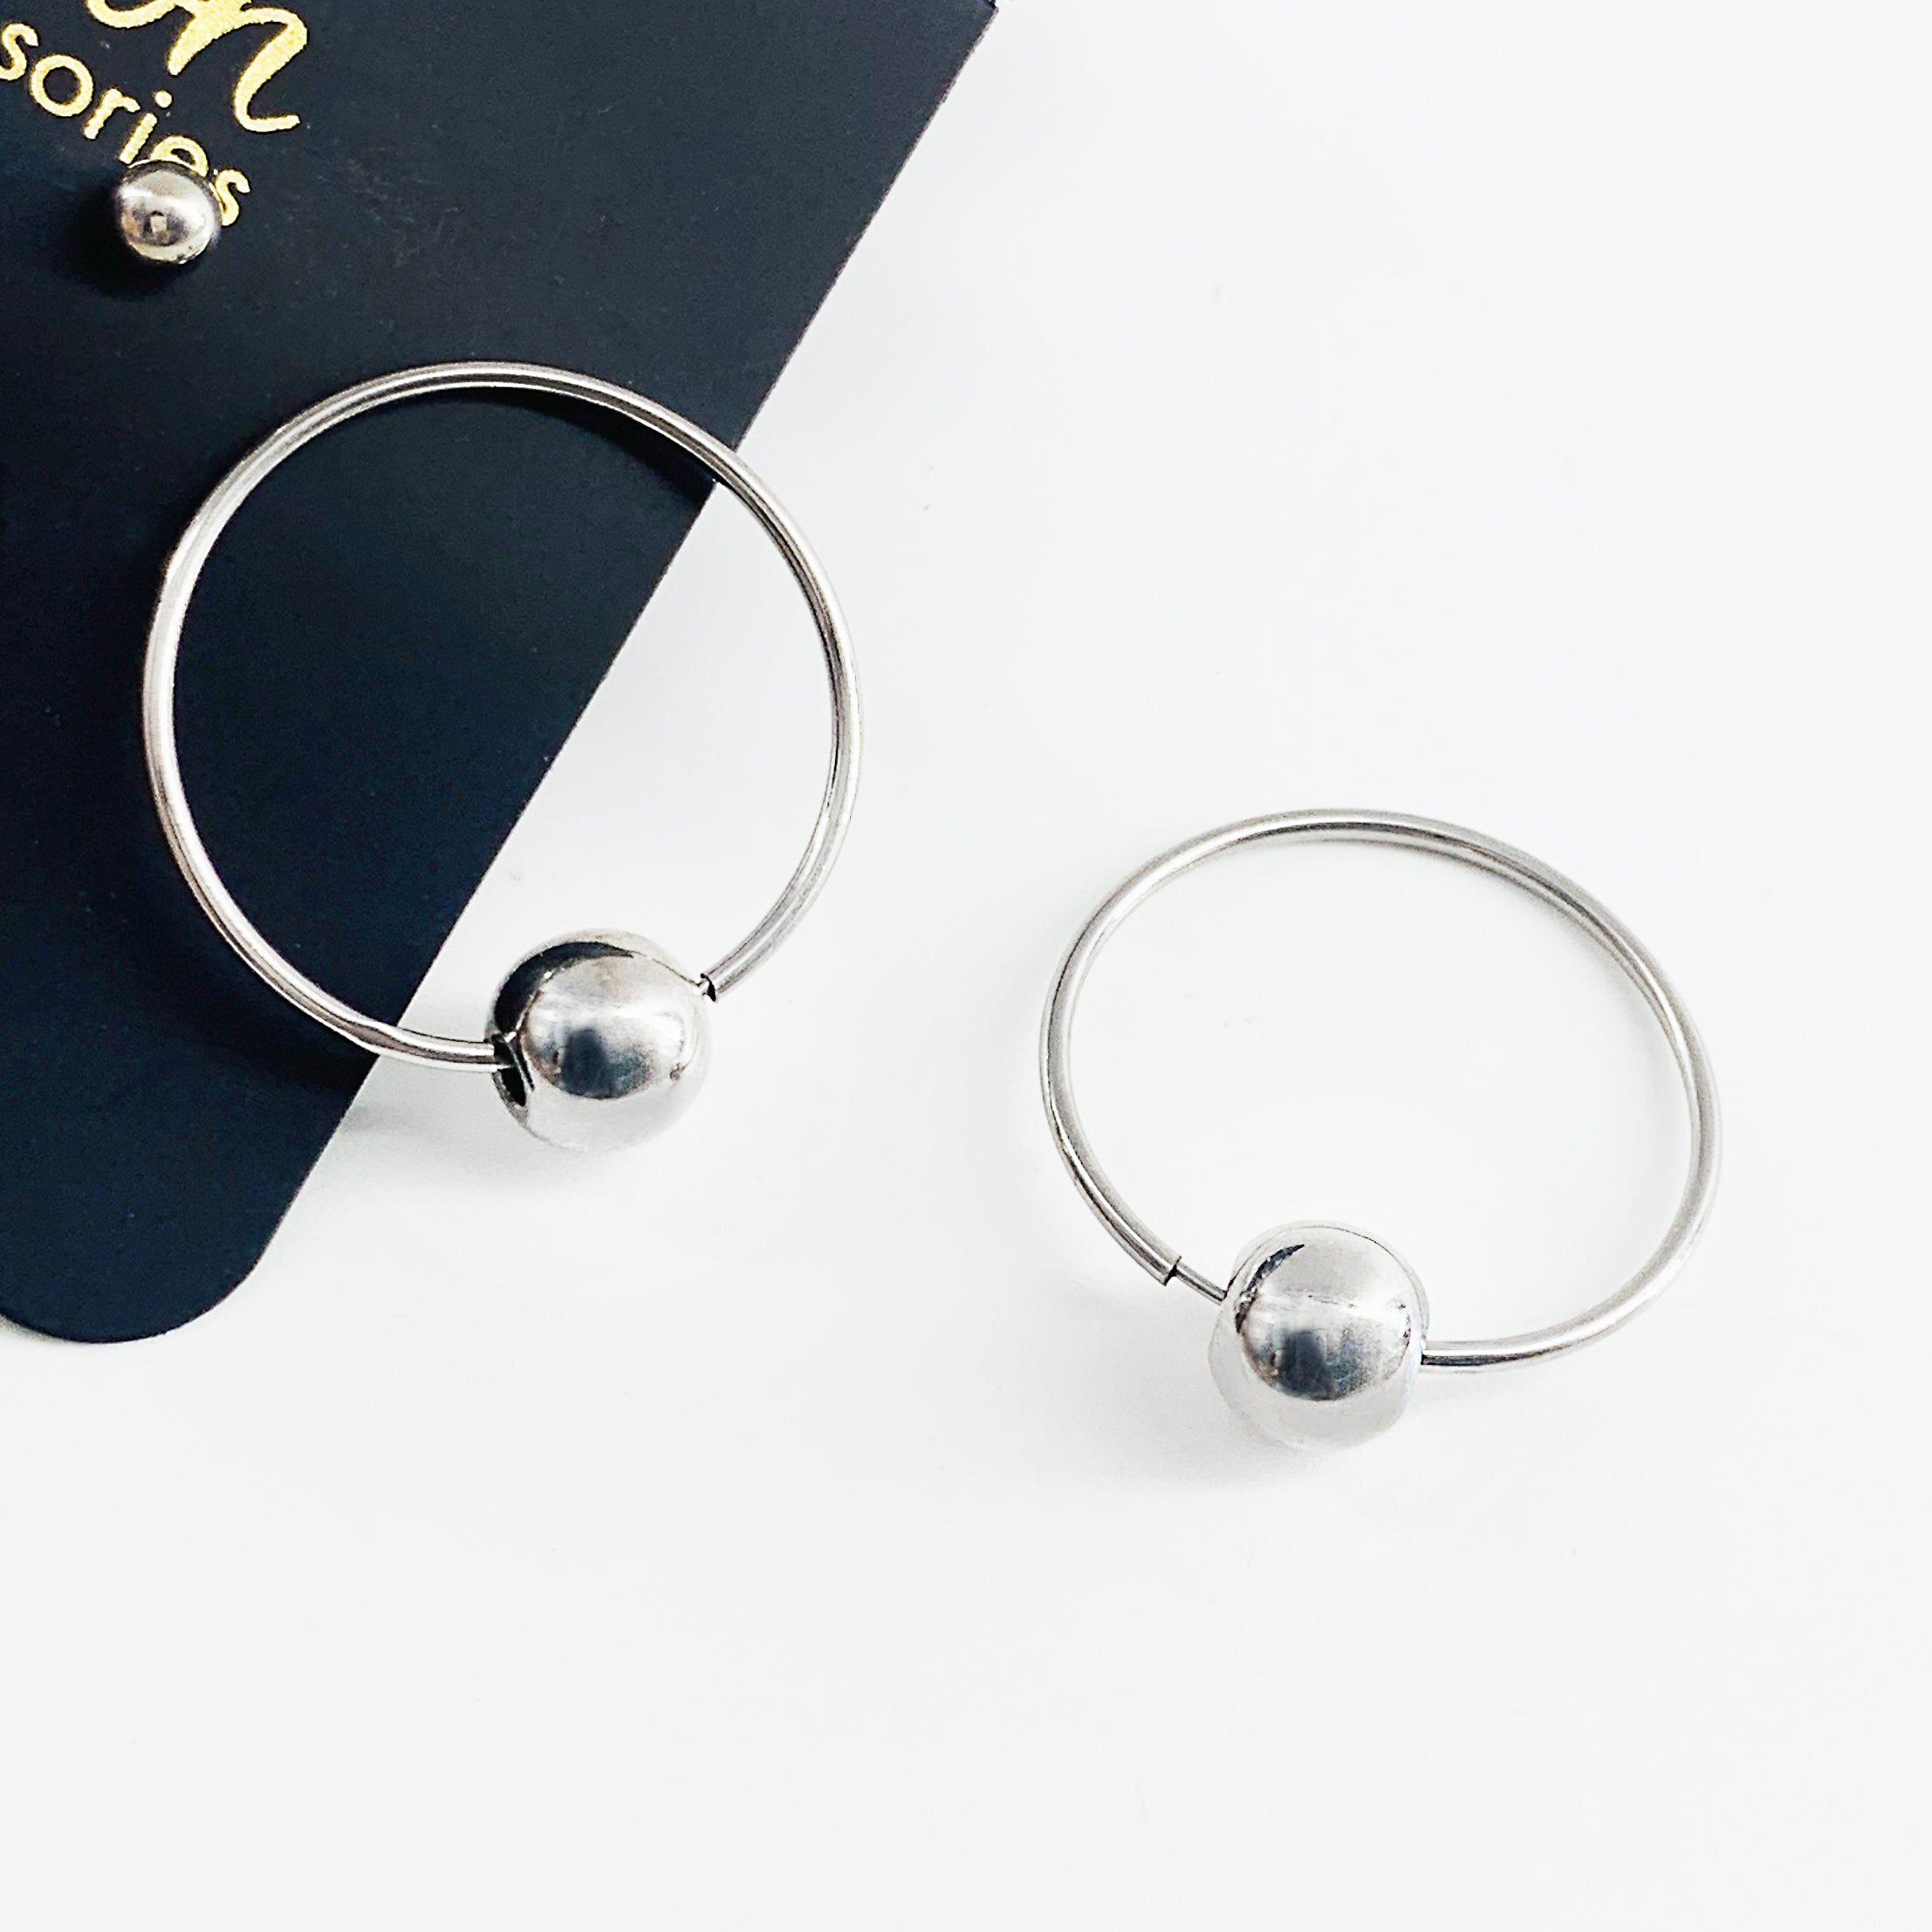 Silver hoop earrings with silver ball